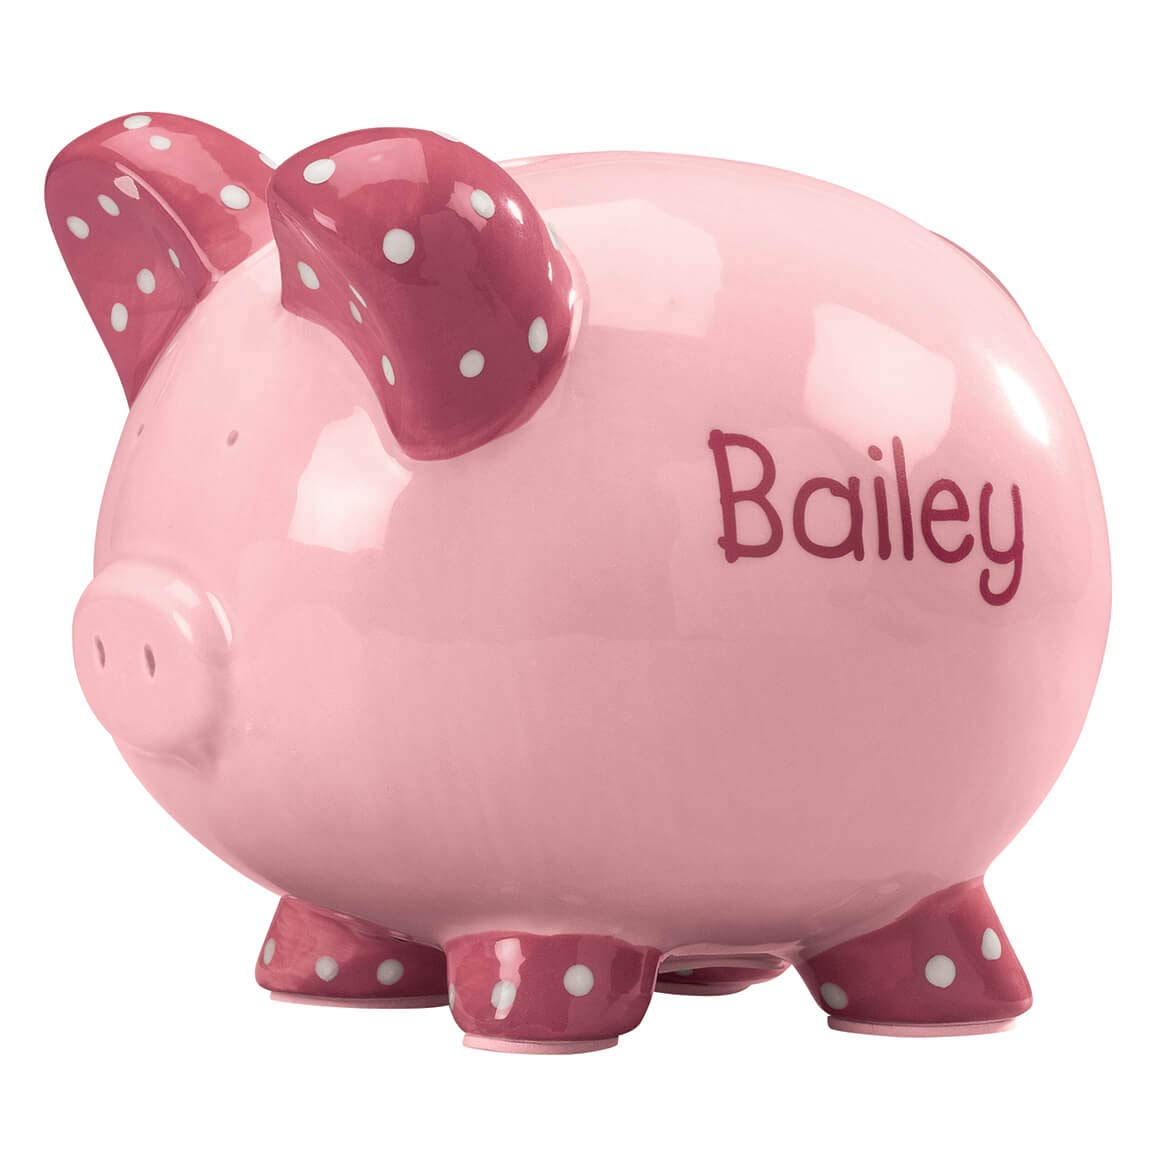 Personalized Kid's Font Piggy Bank - Pink by Miles Kimball